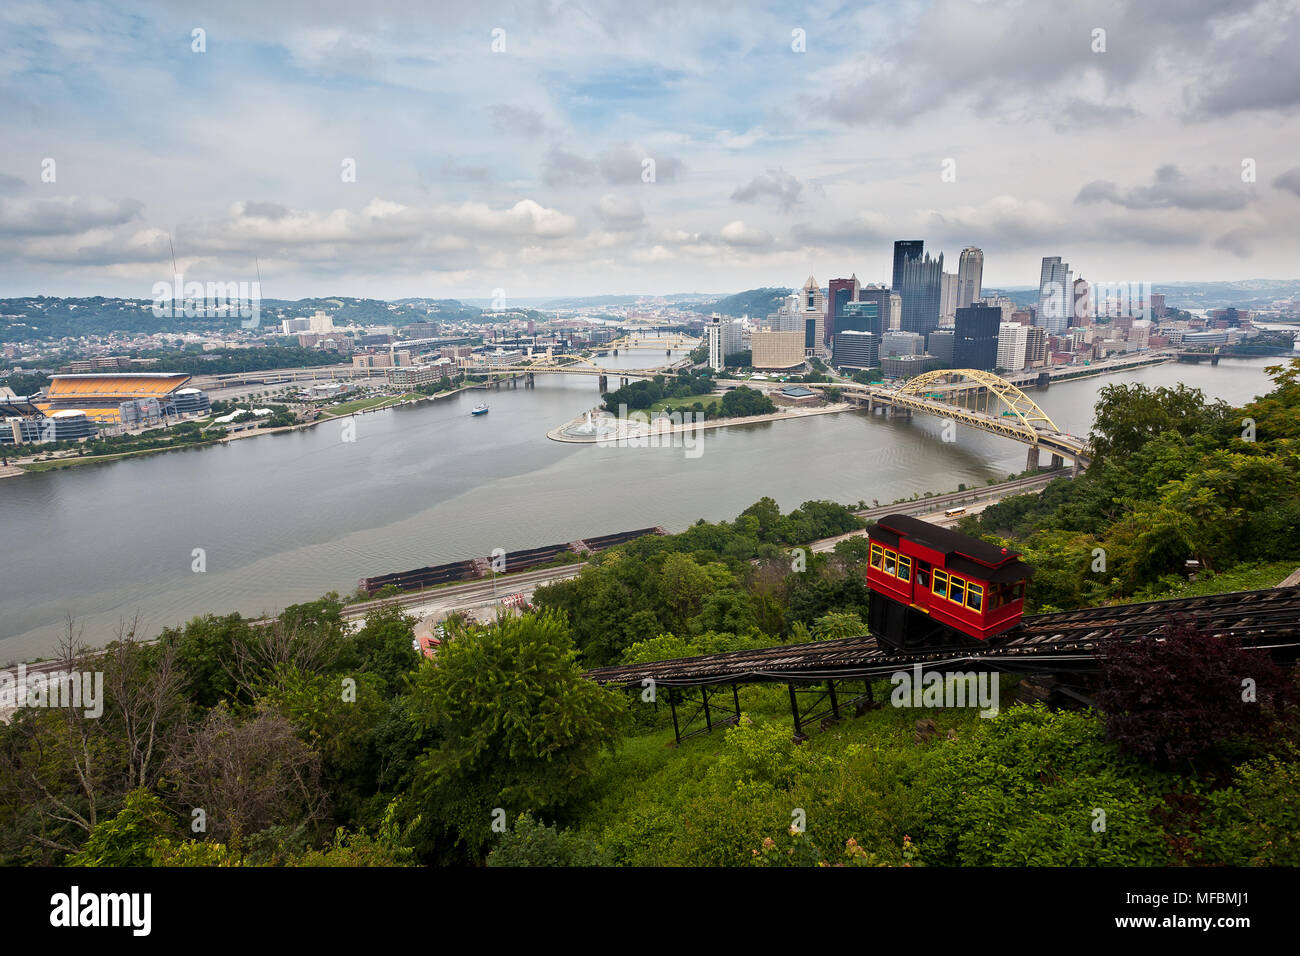 A photo of Pittsburgh from the overlook at the Duquesne Incline. - Stock Image